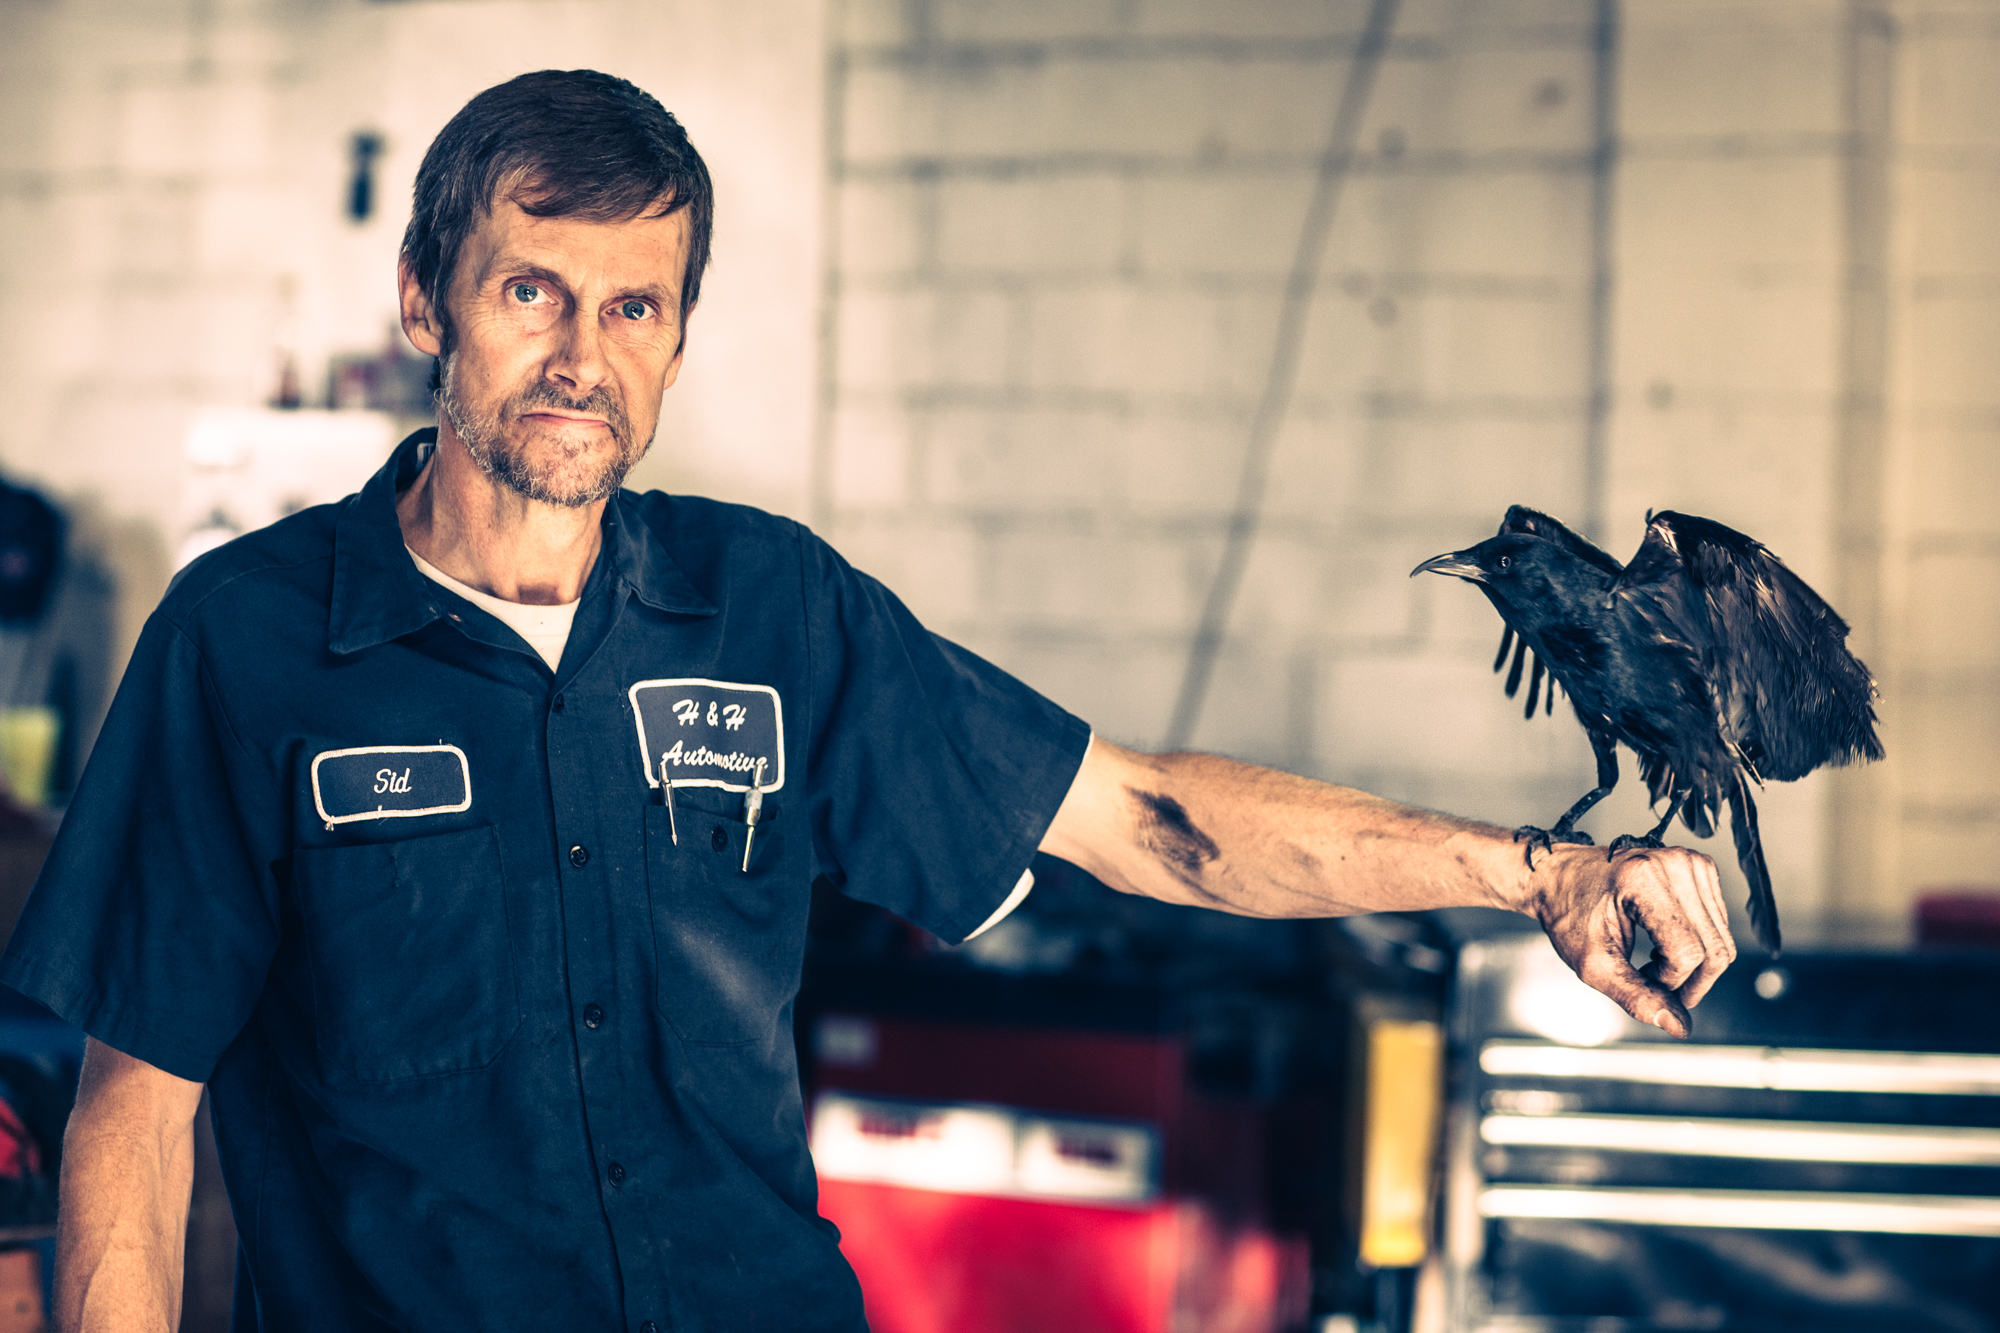 """Sid and his pet crow named """"Crow"""" pose for a portrait at H&H Automotive in Athens, GAShot for Flagpole Magazine's """"Everyday People"""" series."""